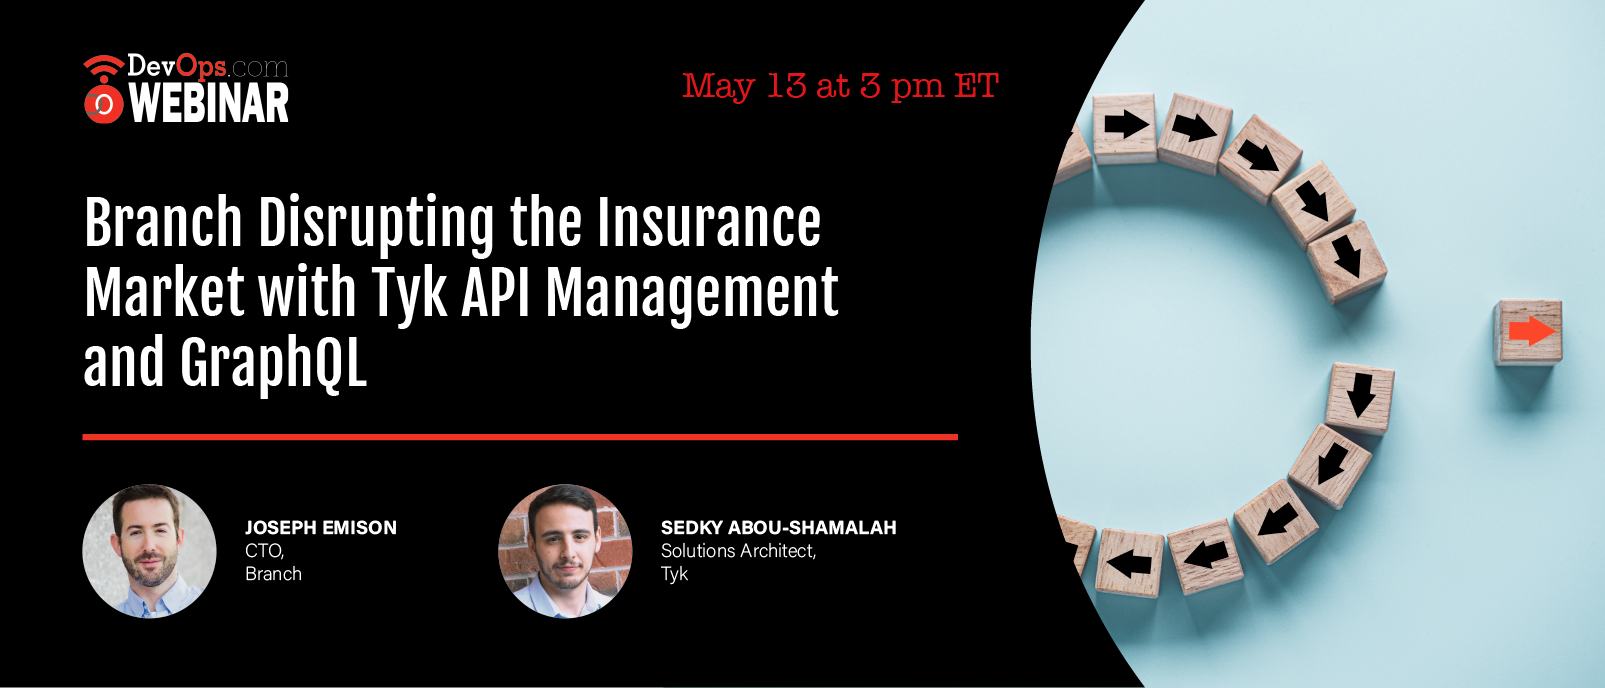 Branch Disrupting the Insurance Market with Tyk API Management and GraphQL